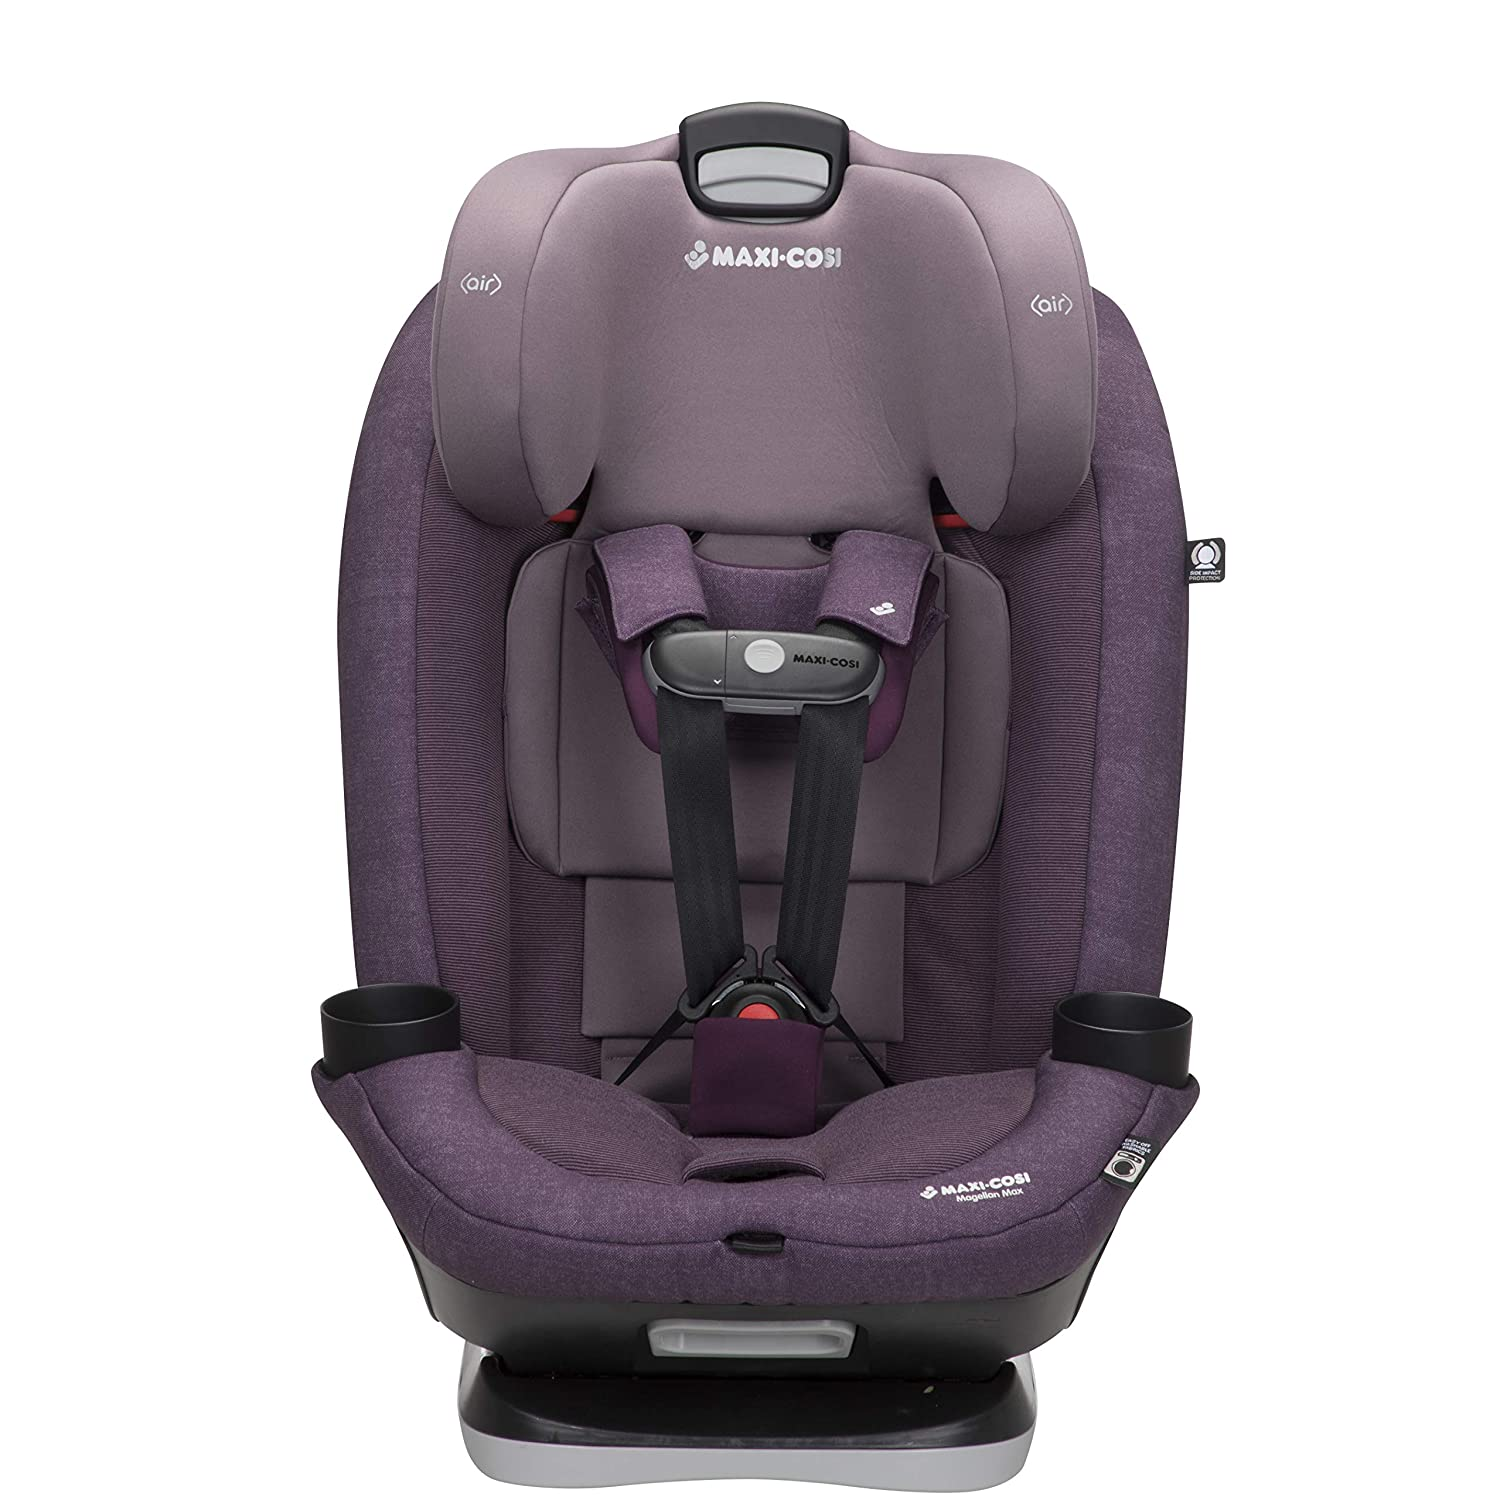 Maxi-Cosi Magellan Max All-in-One Convertible Car Seat with 5 Modes and Magnetic Chest Clip, Nomad Purple